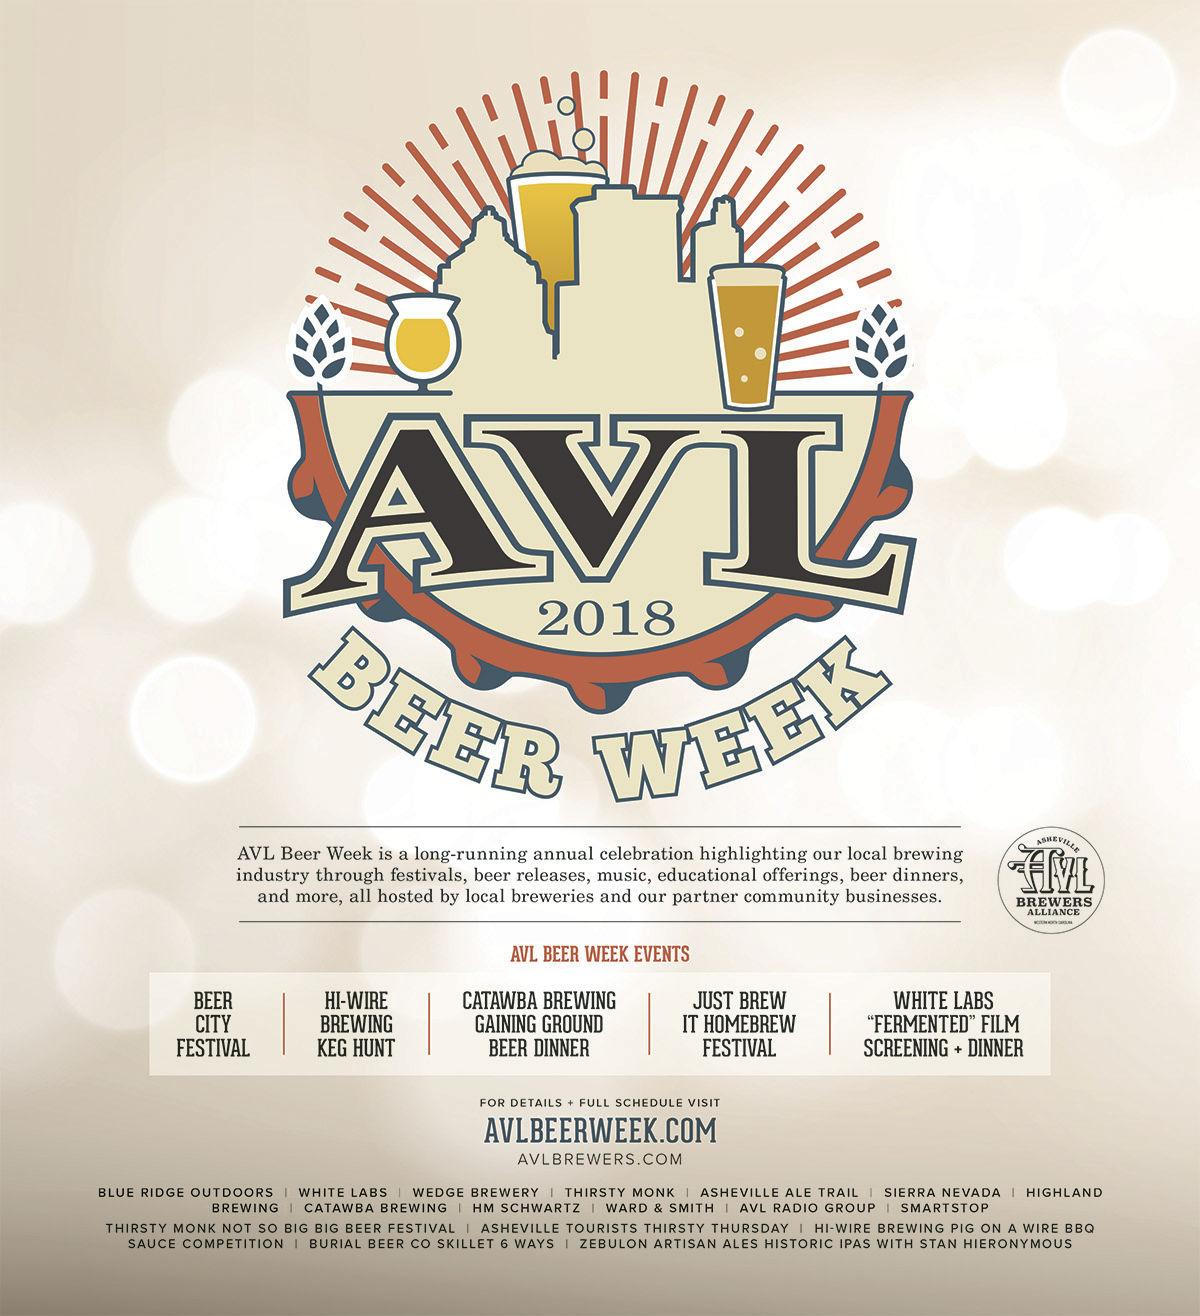 7th Annual AVL Beer Week is May 25 - June 2 | The Guide To ...